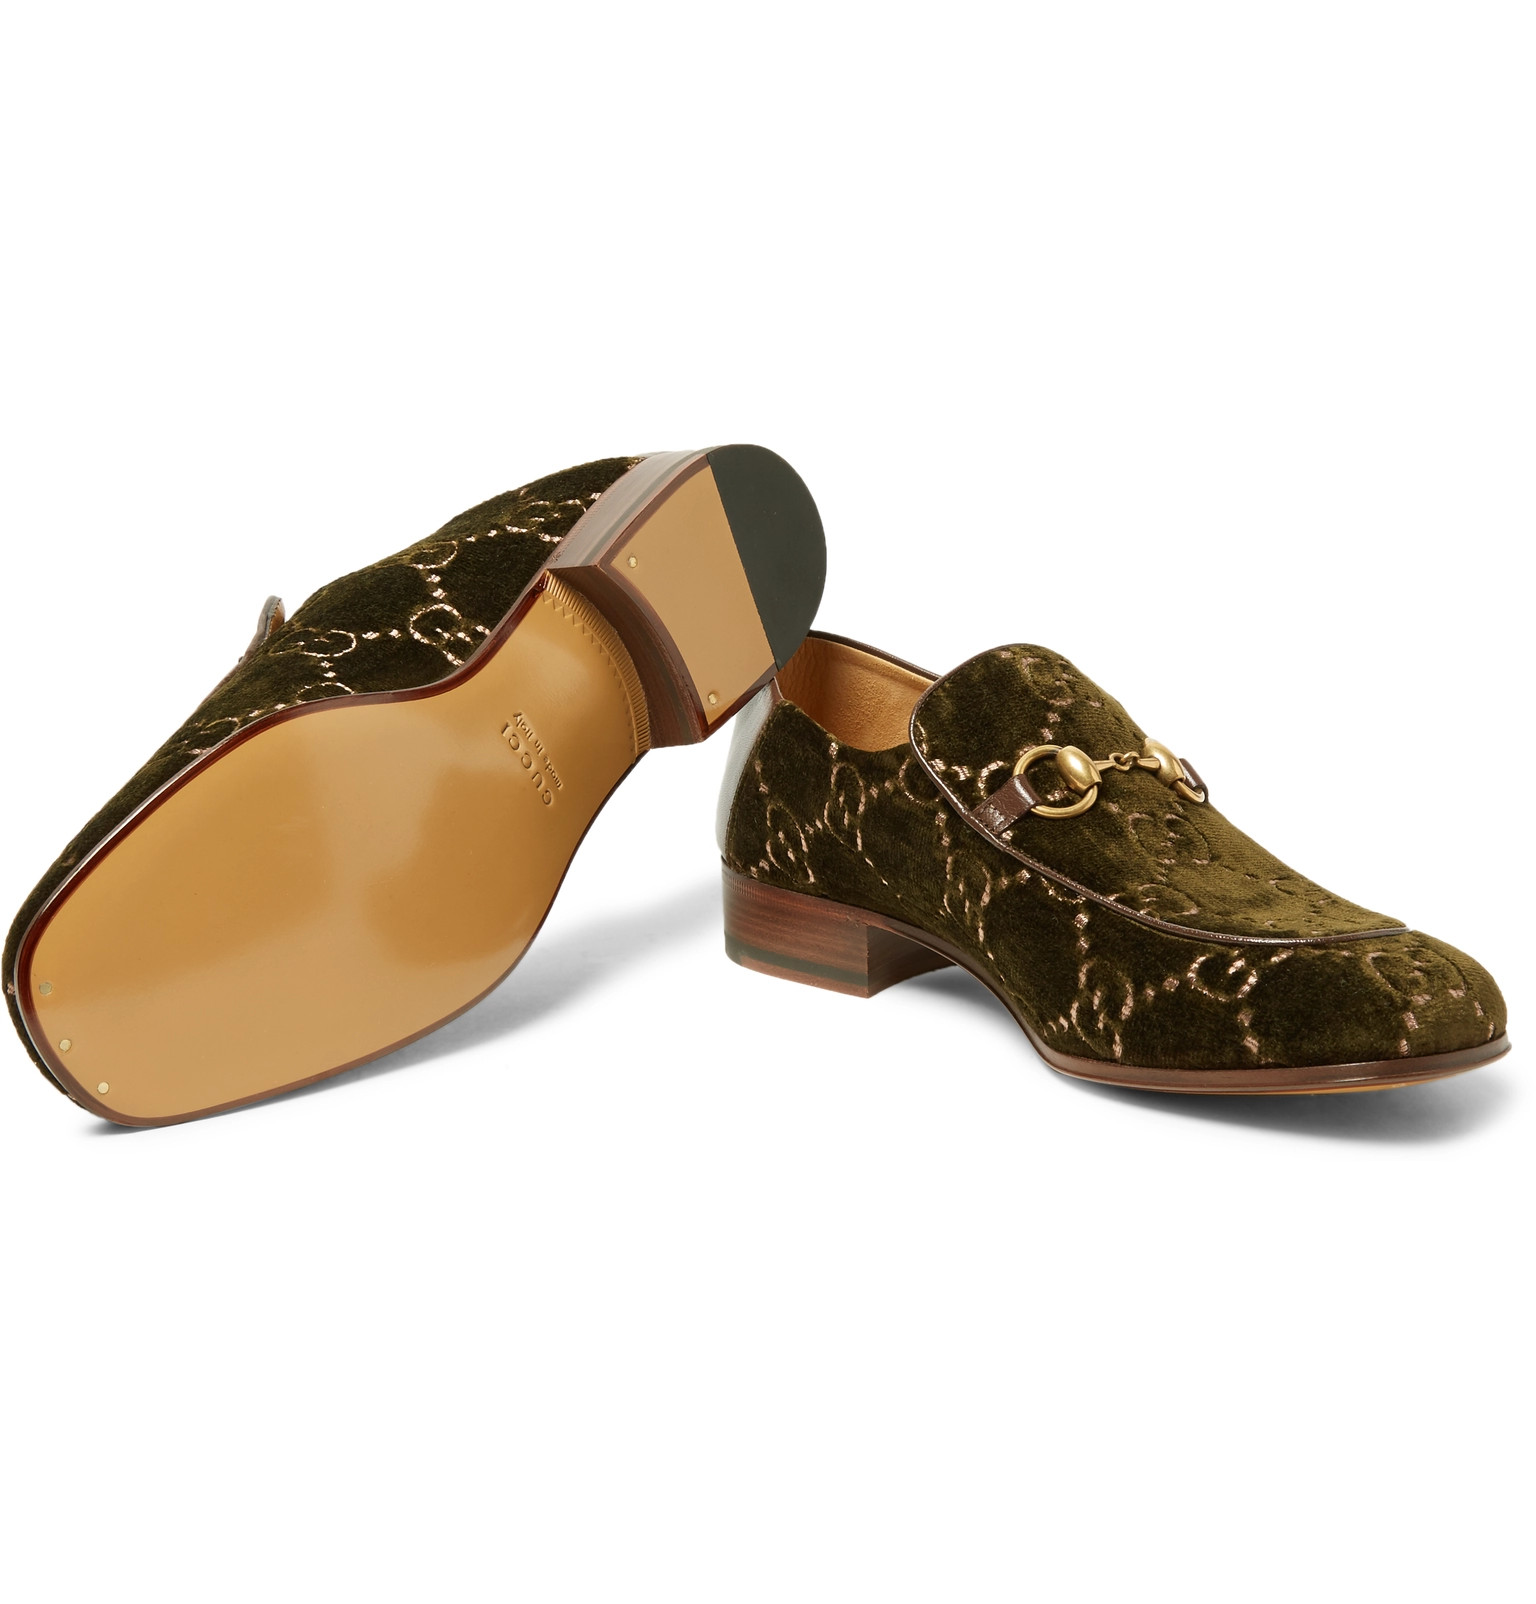 e566dd25b GucciHorsebit Collapsible-Heel Leather-Trimmed Embroidered Velvet Loafers